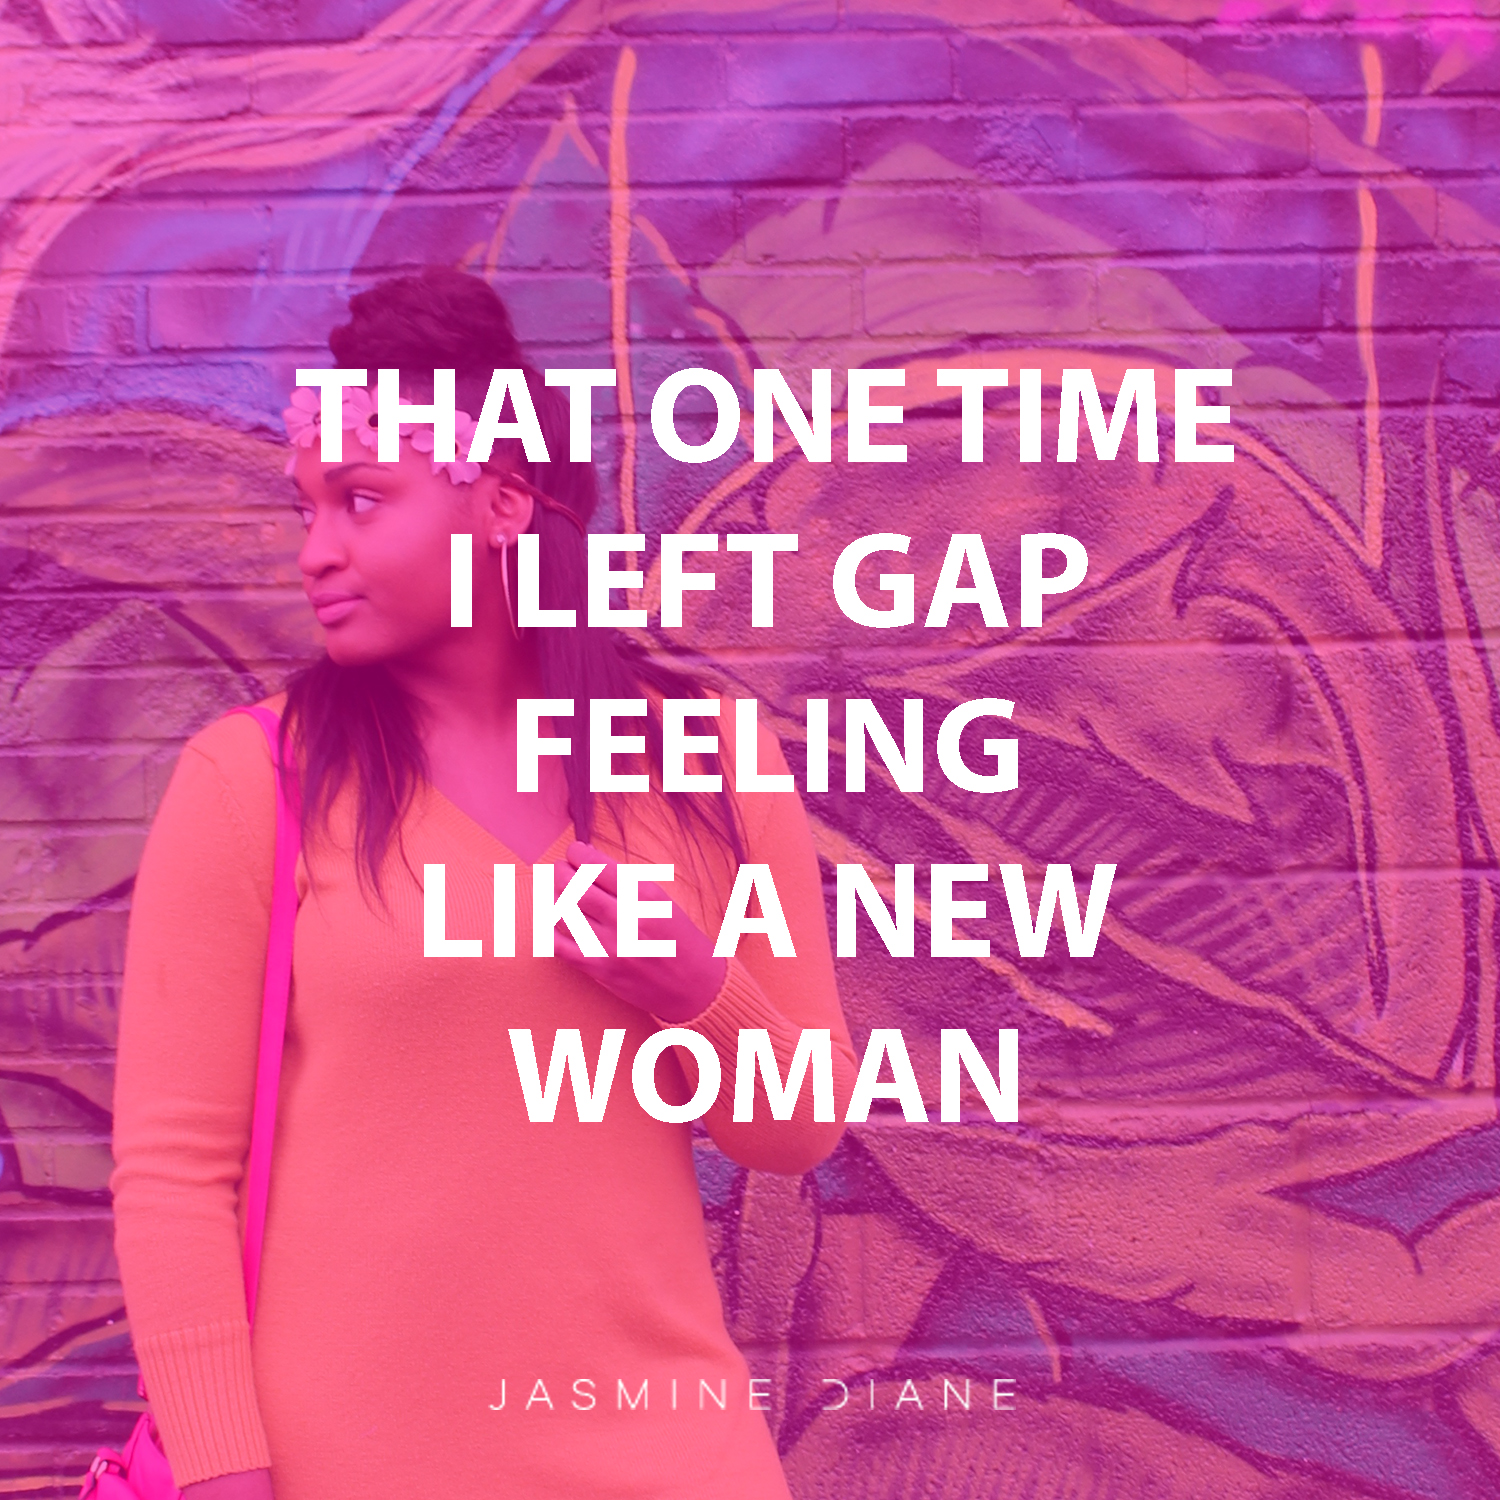 That 1 time I left gap feeling like a new woman